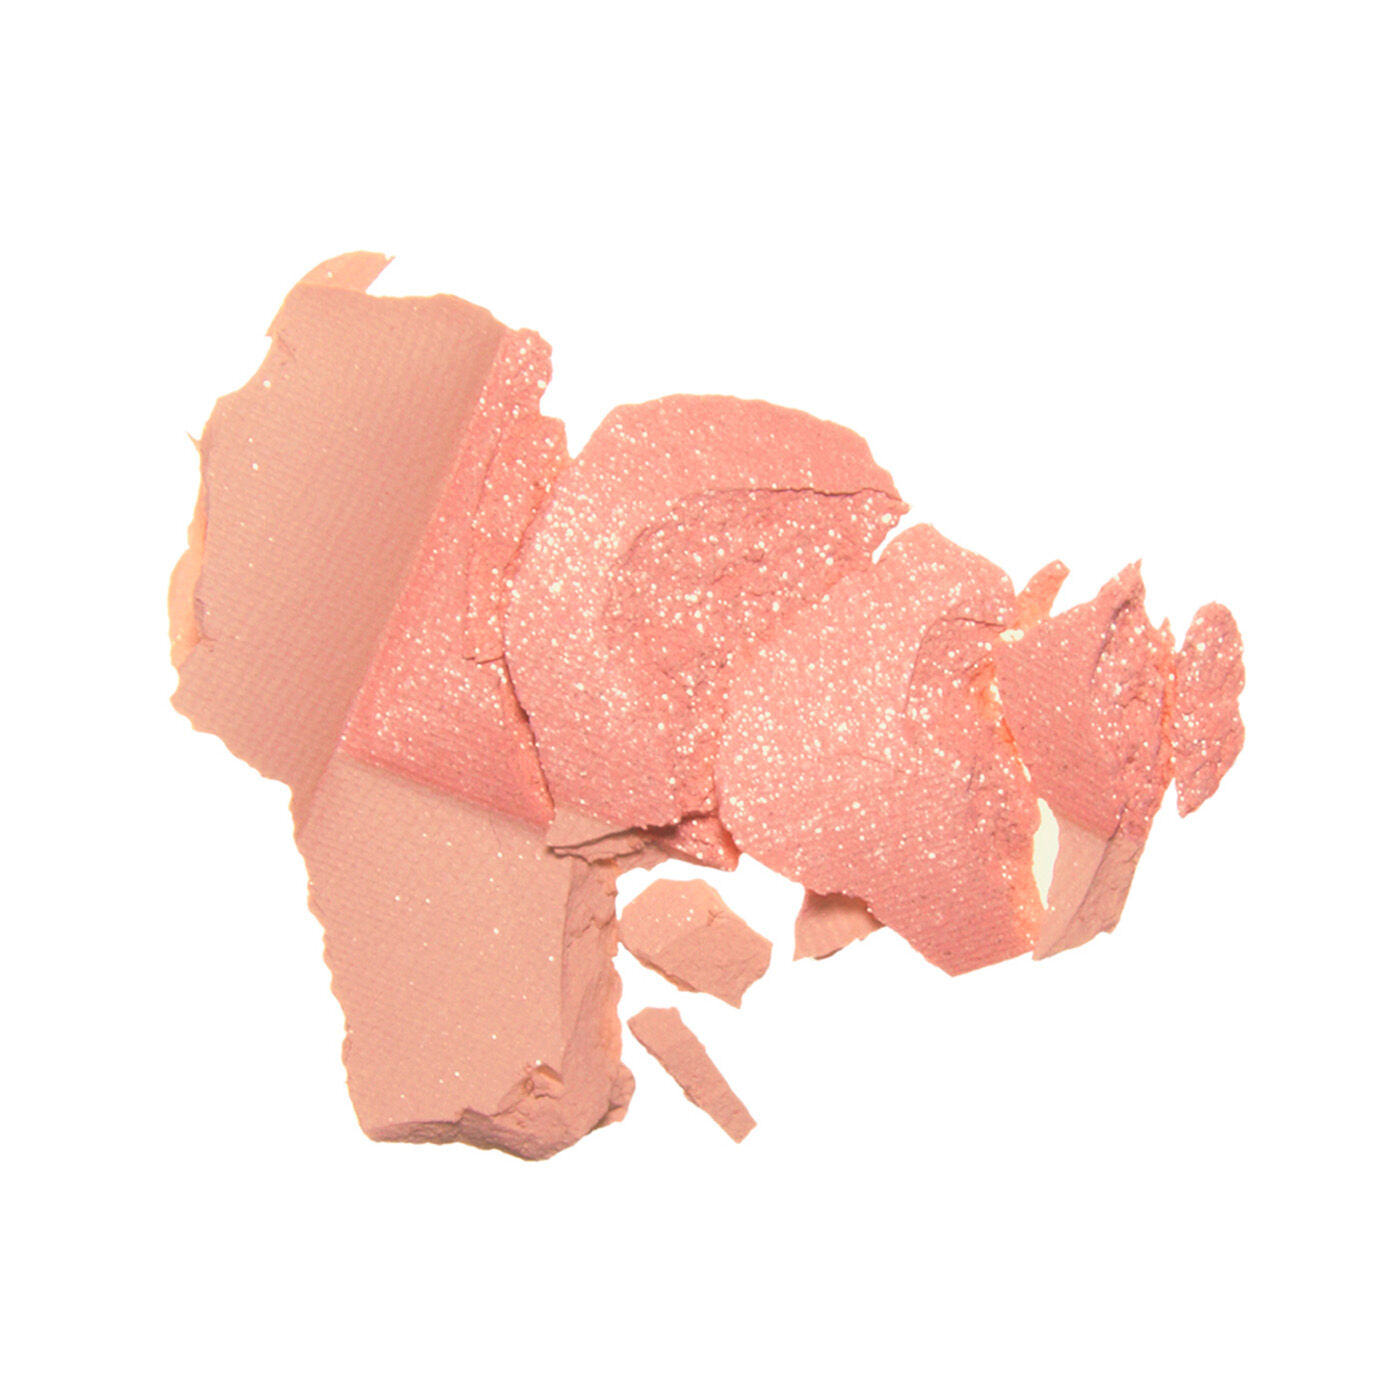 Puder-Rouge%20Blush%20Prodige